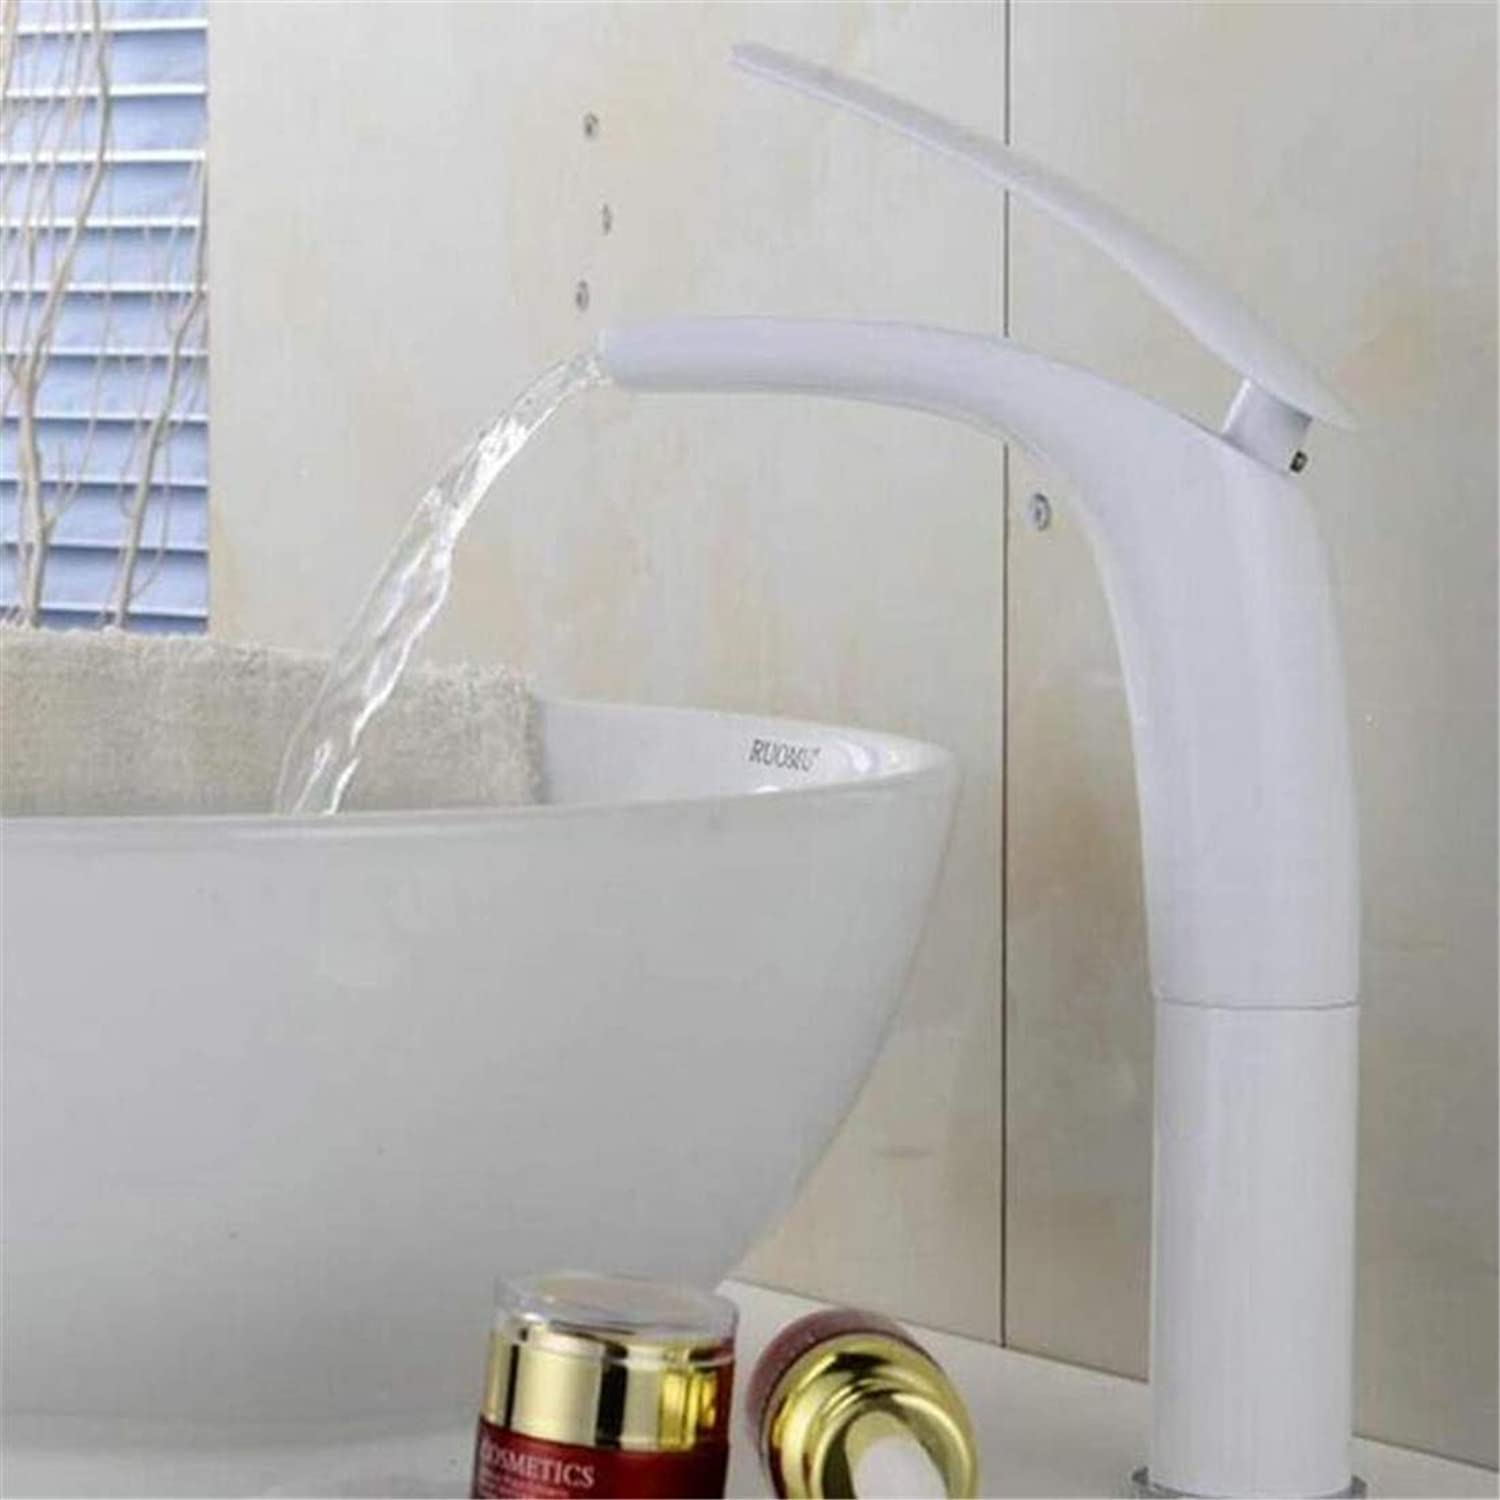 Faucet Kitchen Bathroom Stainless Steel Faucet Faucet Washbasin Mixer Waterfall Basin Faucets Hot&Cold Mixer Bathroom Basin Tap Brass